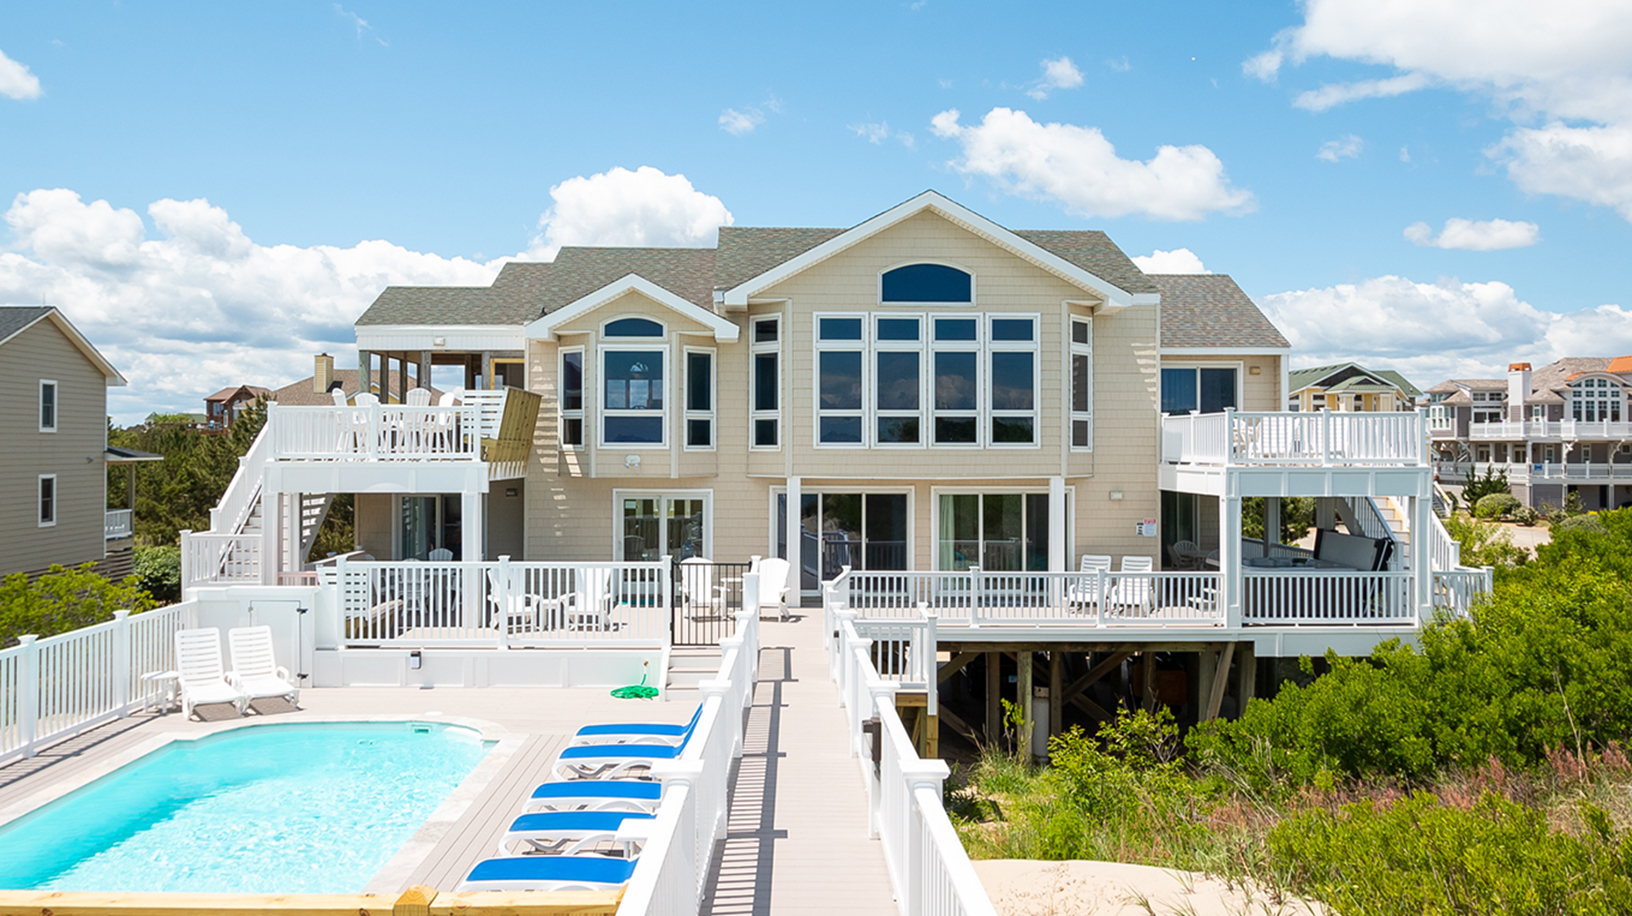 large new cottage outer layers lodging rentals amenities vacation to sky obx stay banks where